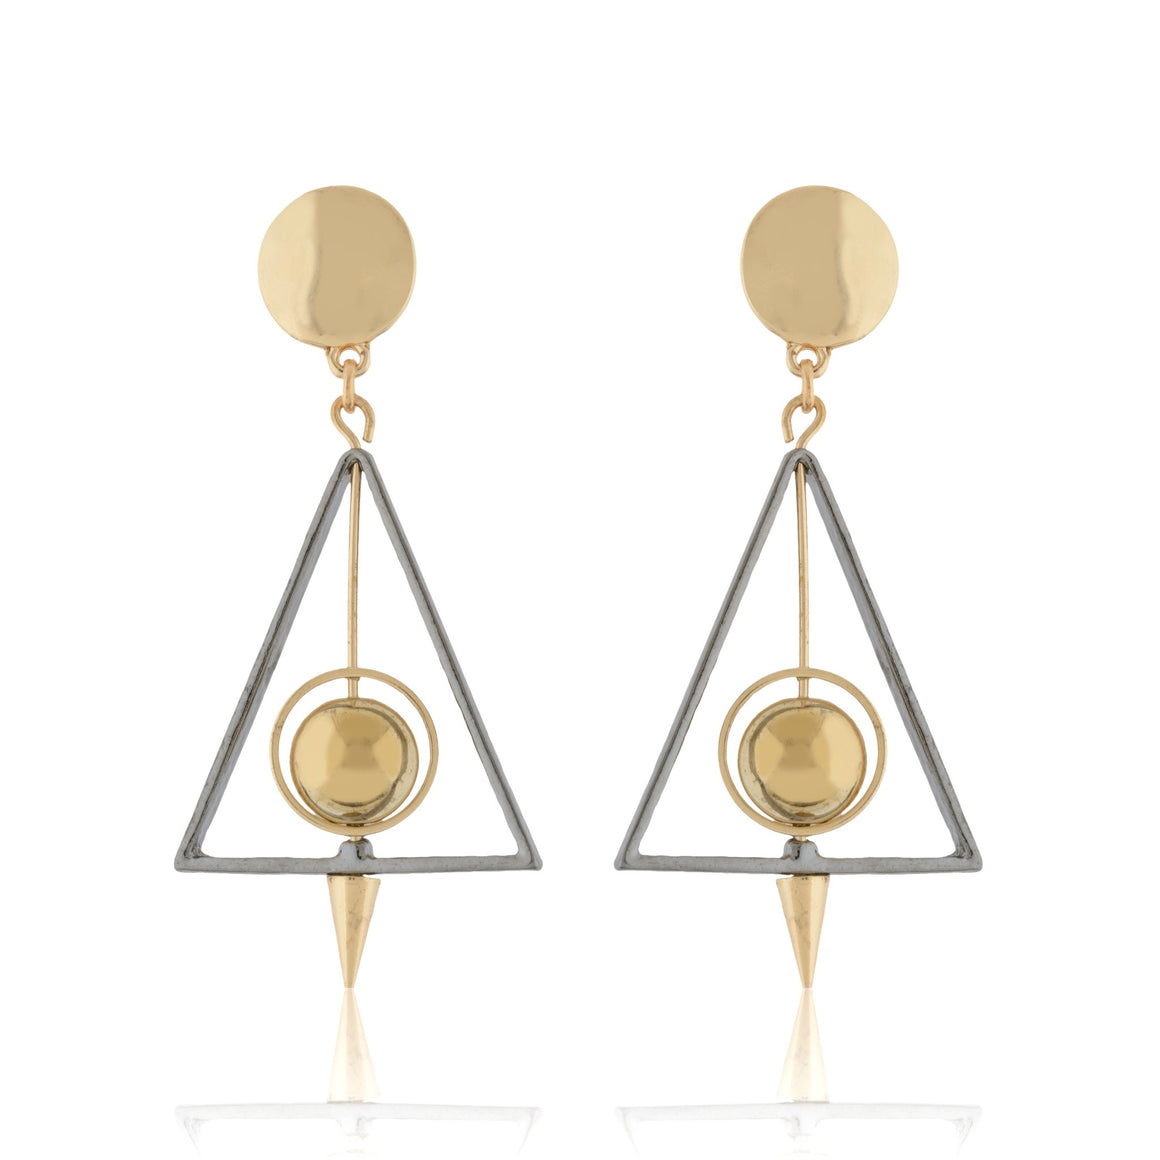 Tempest Rivet Earrings